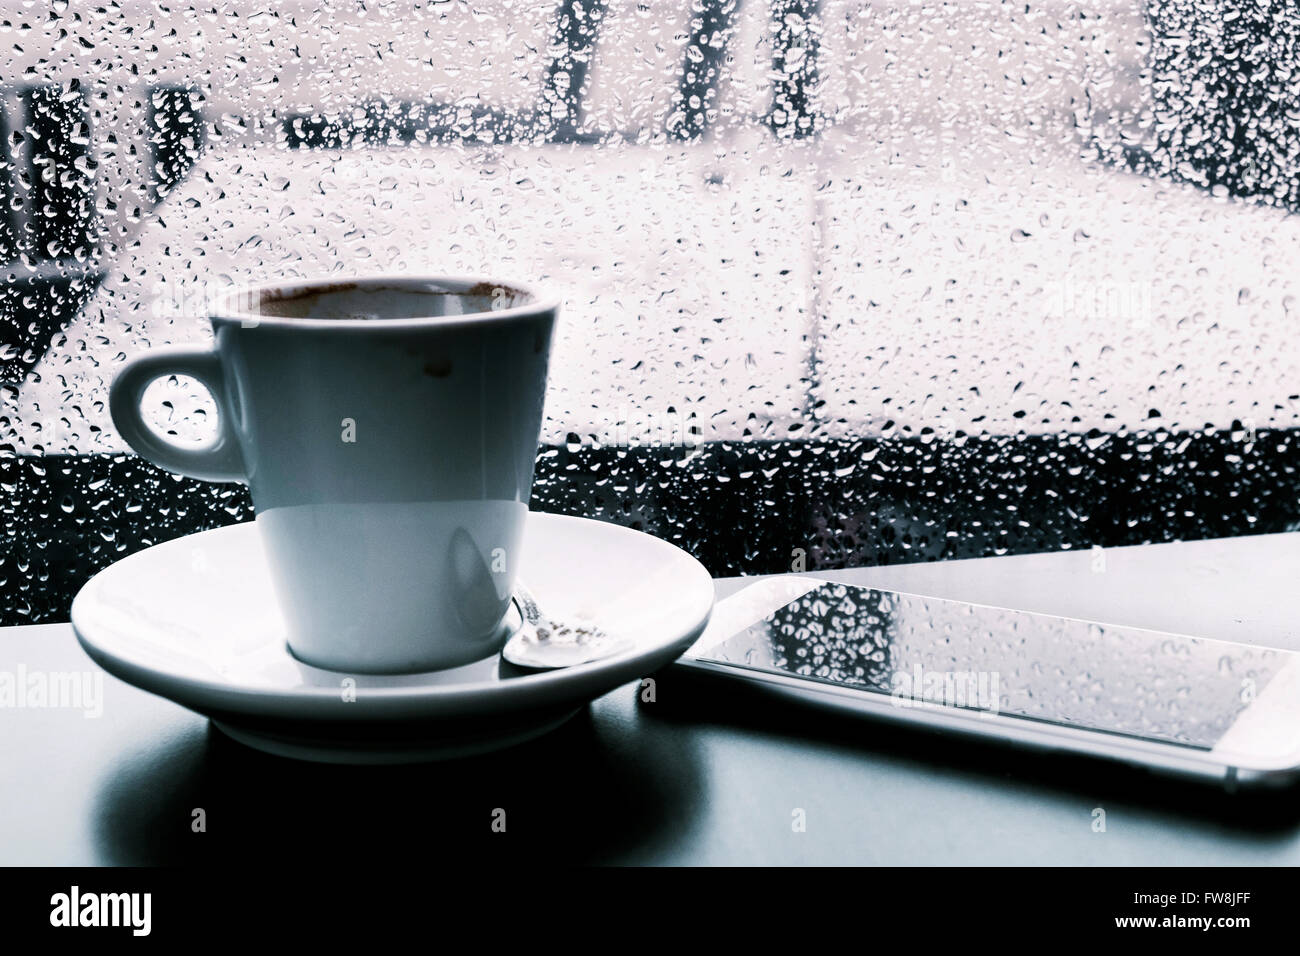 closeup of a cup of coffee and a smartphone on a table while is raining outside - Stock Image